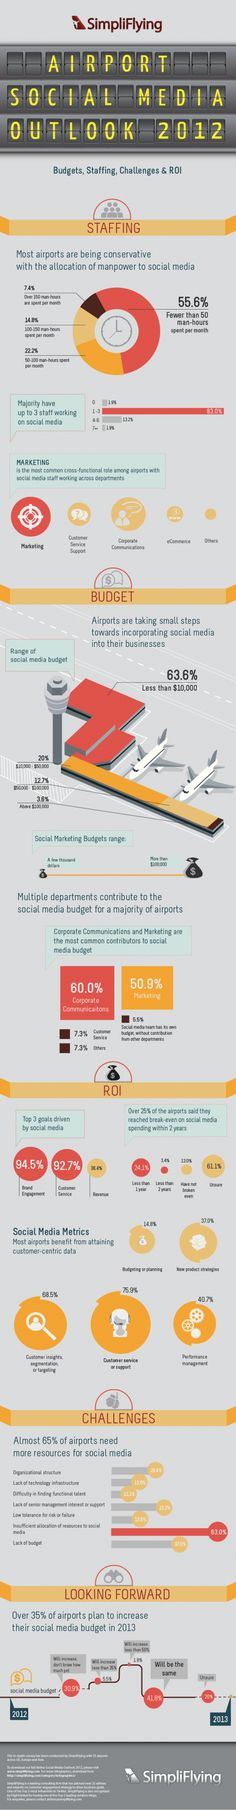 How Airports Using Social Media in 2012   http://simpliflying.com/2012/report-infographic-airport-social-media-outlook-2012-resource-allocation-challenges-and-roi/